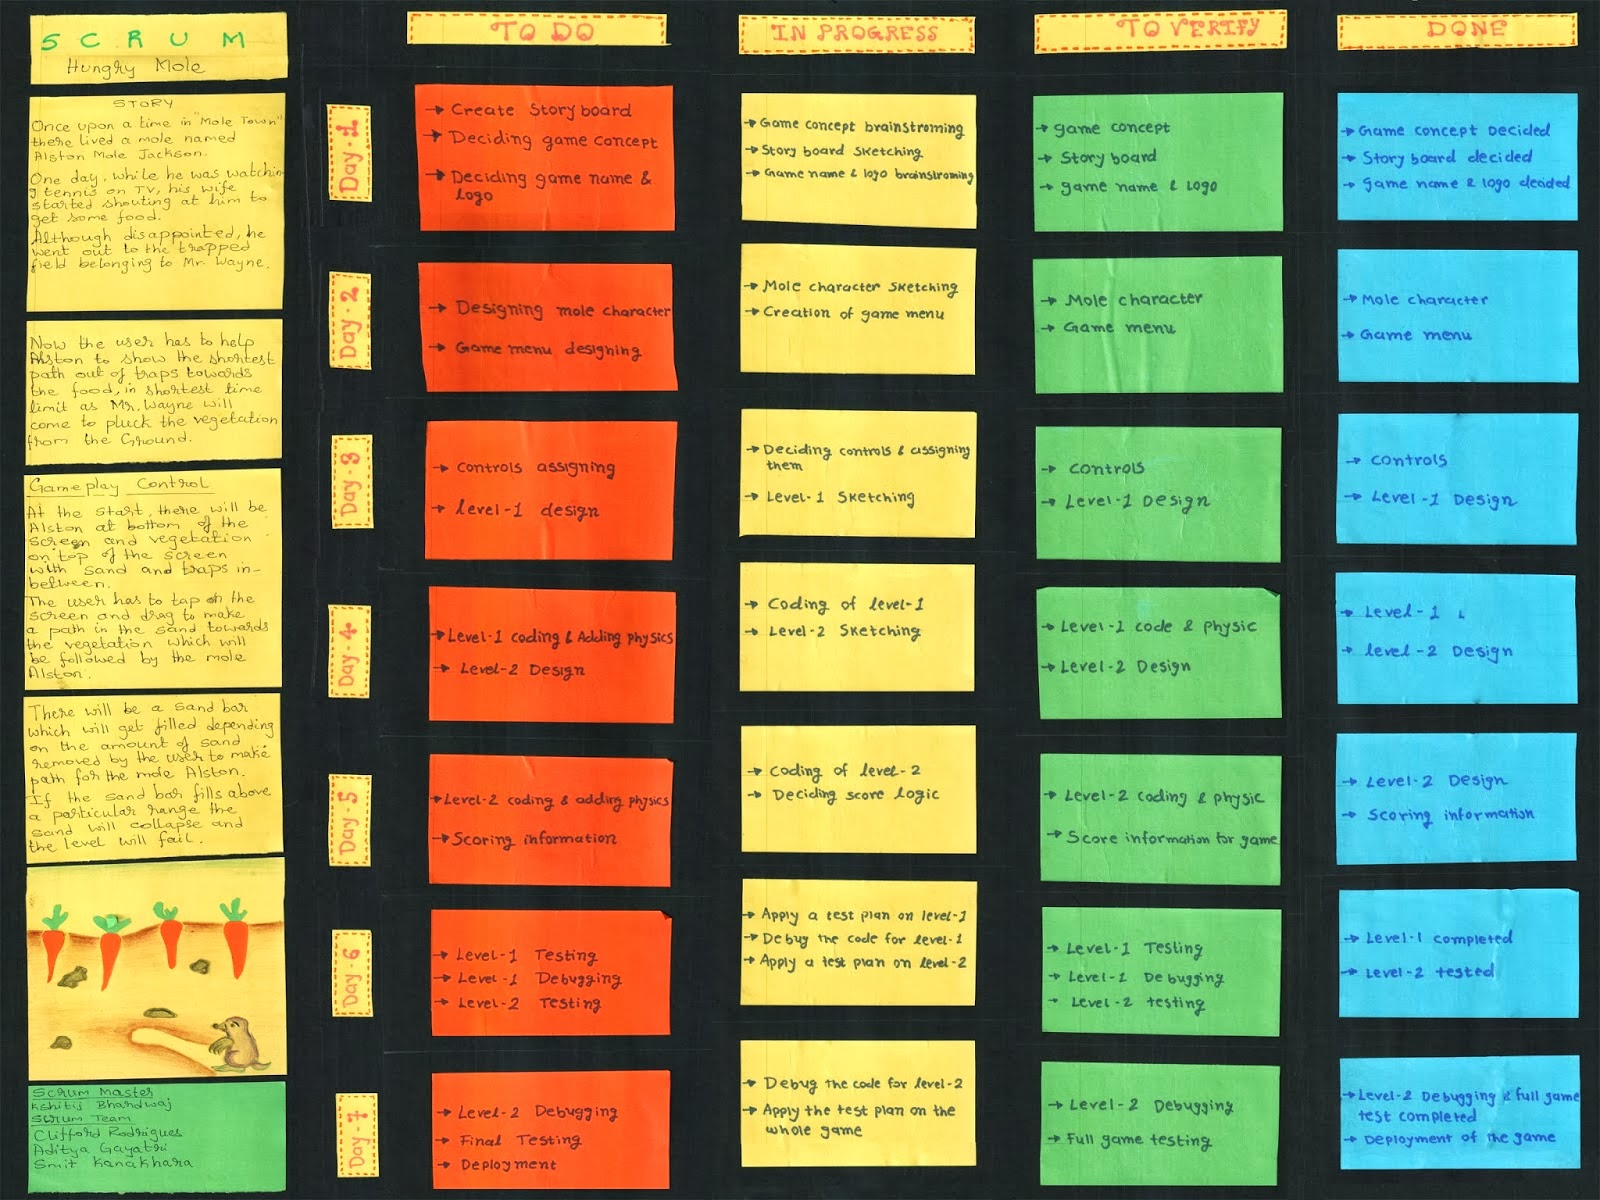 board game swot 2017-11-15 one of the best ways to prepare yourself for conducting a swot analysis is to use swot analysis examples for help and inspiration.